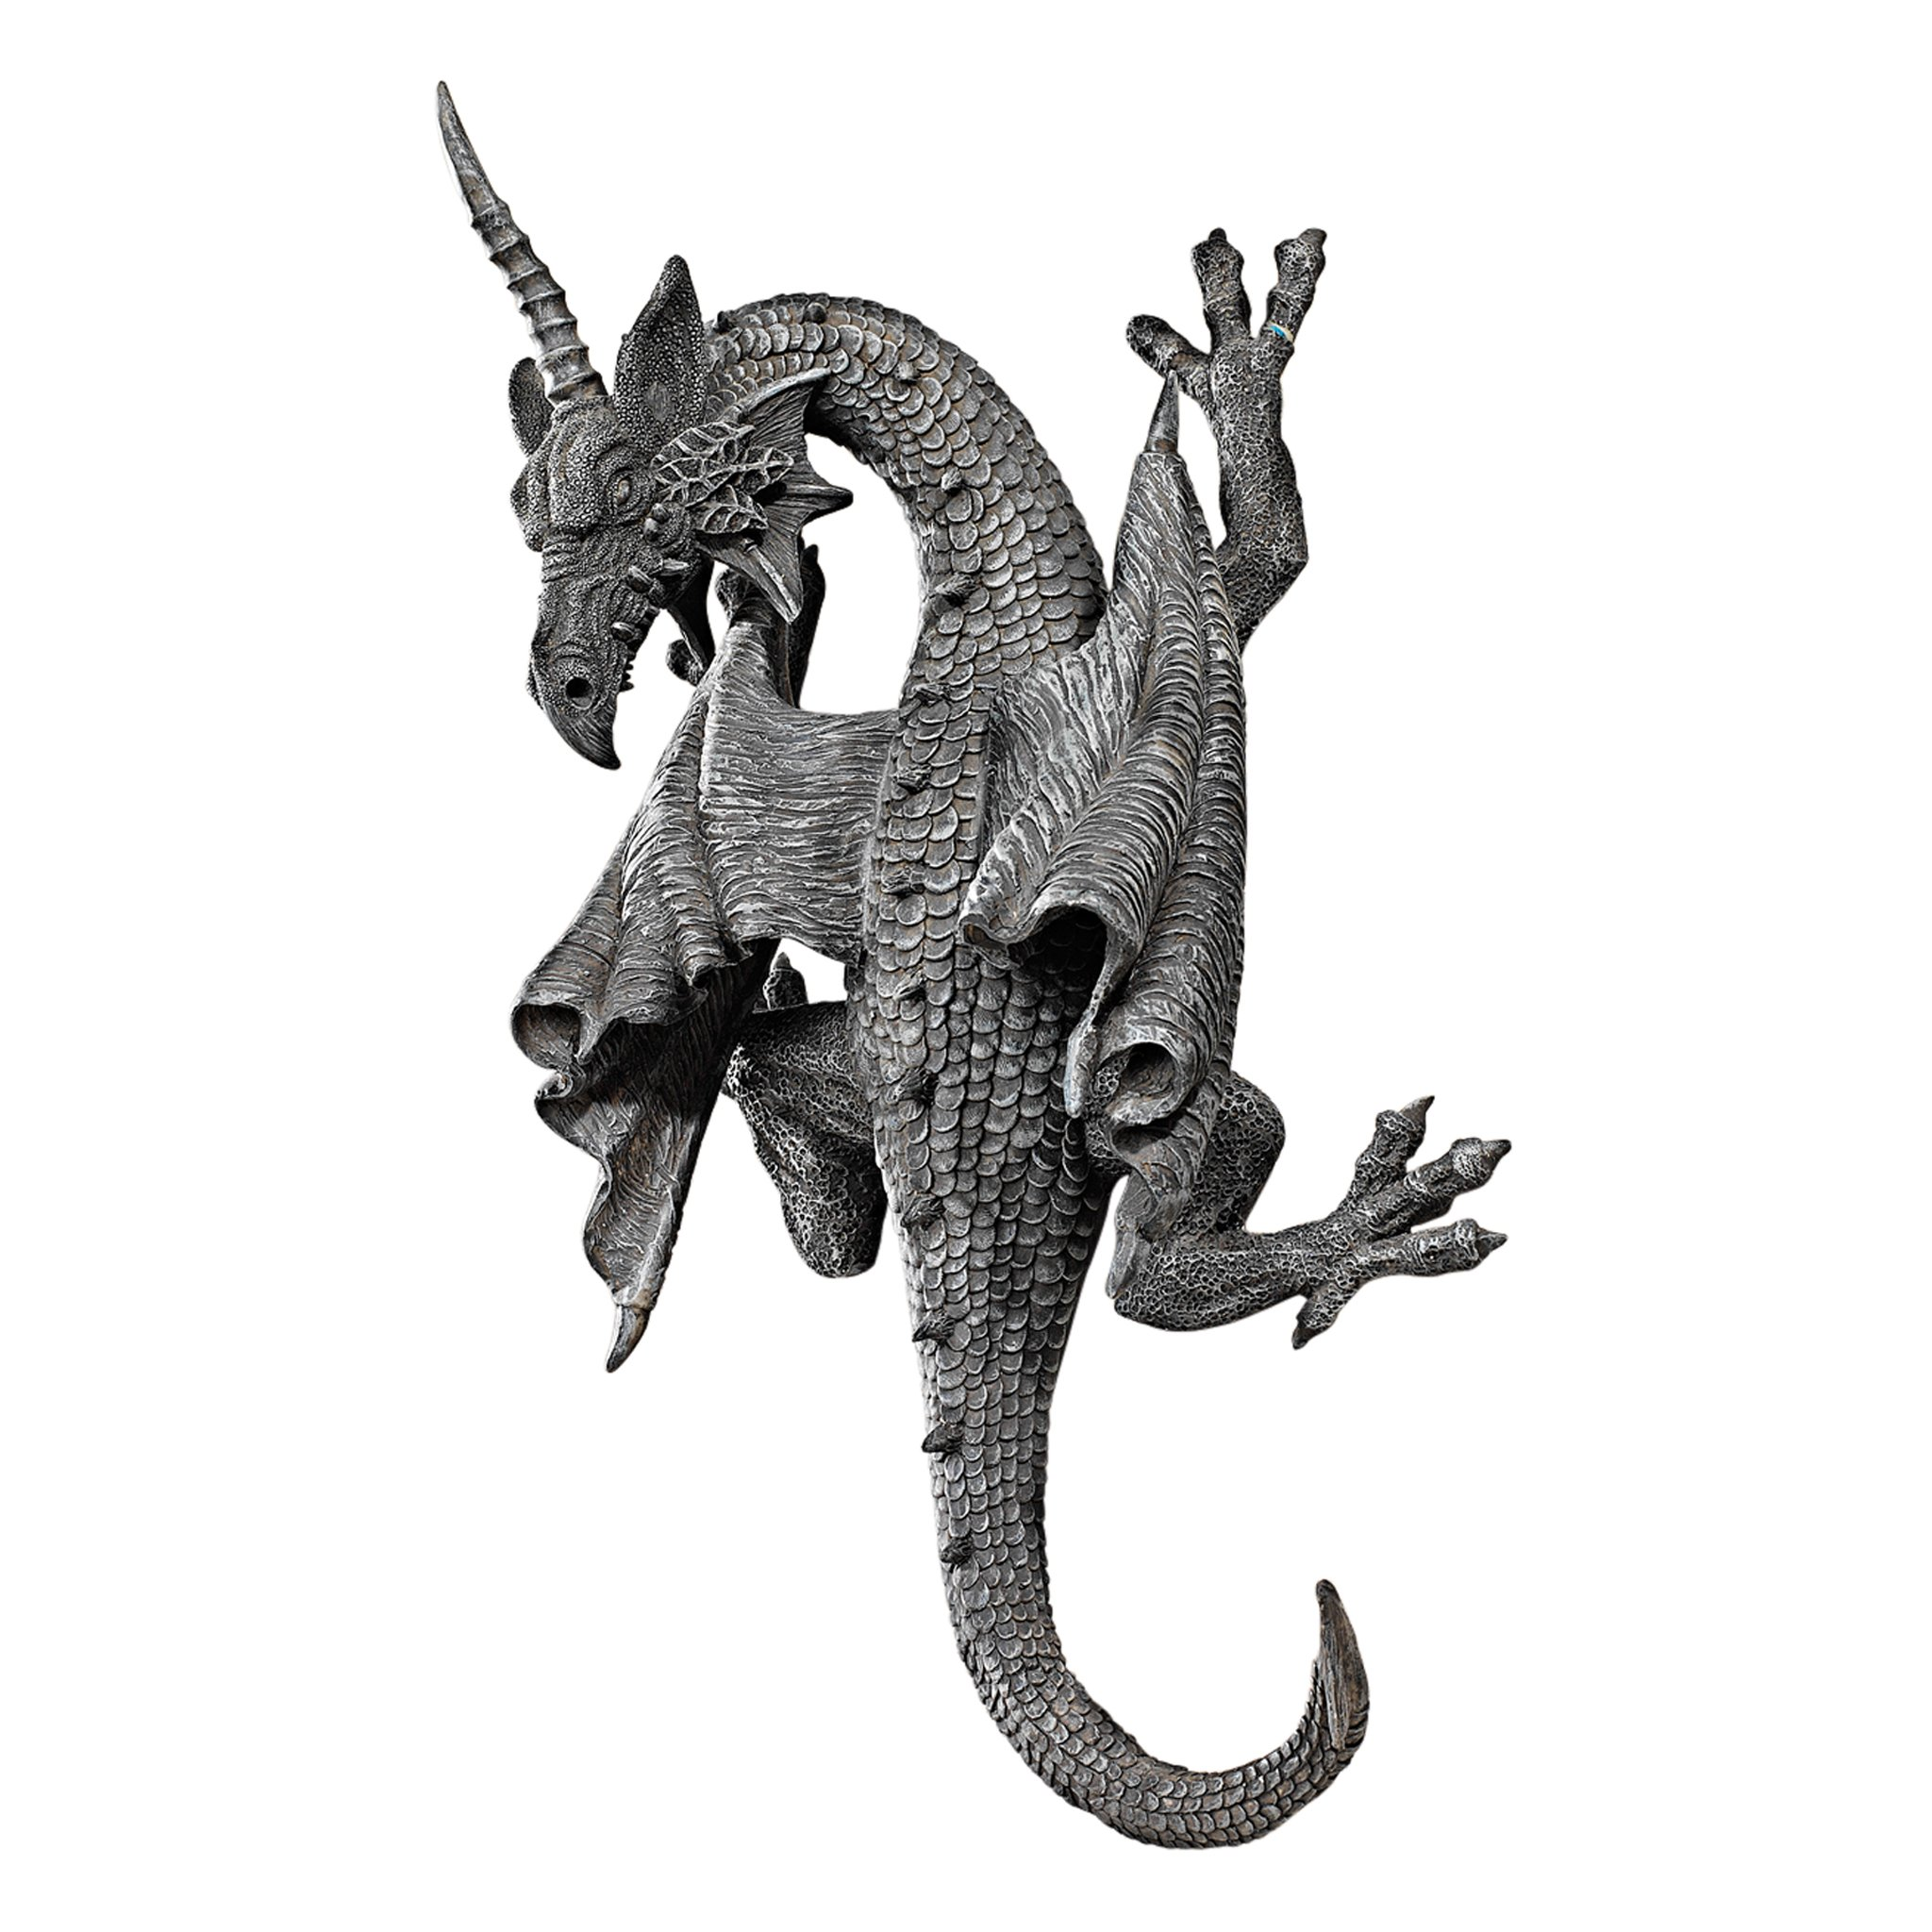 Design Toscano PD1376 Horned Dragon of Devonshire Wall Sculpture, 33 cm, Polyresin, Grey Stone